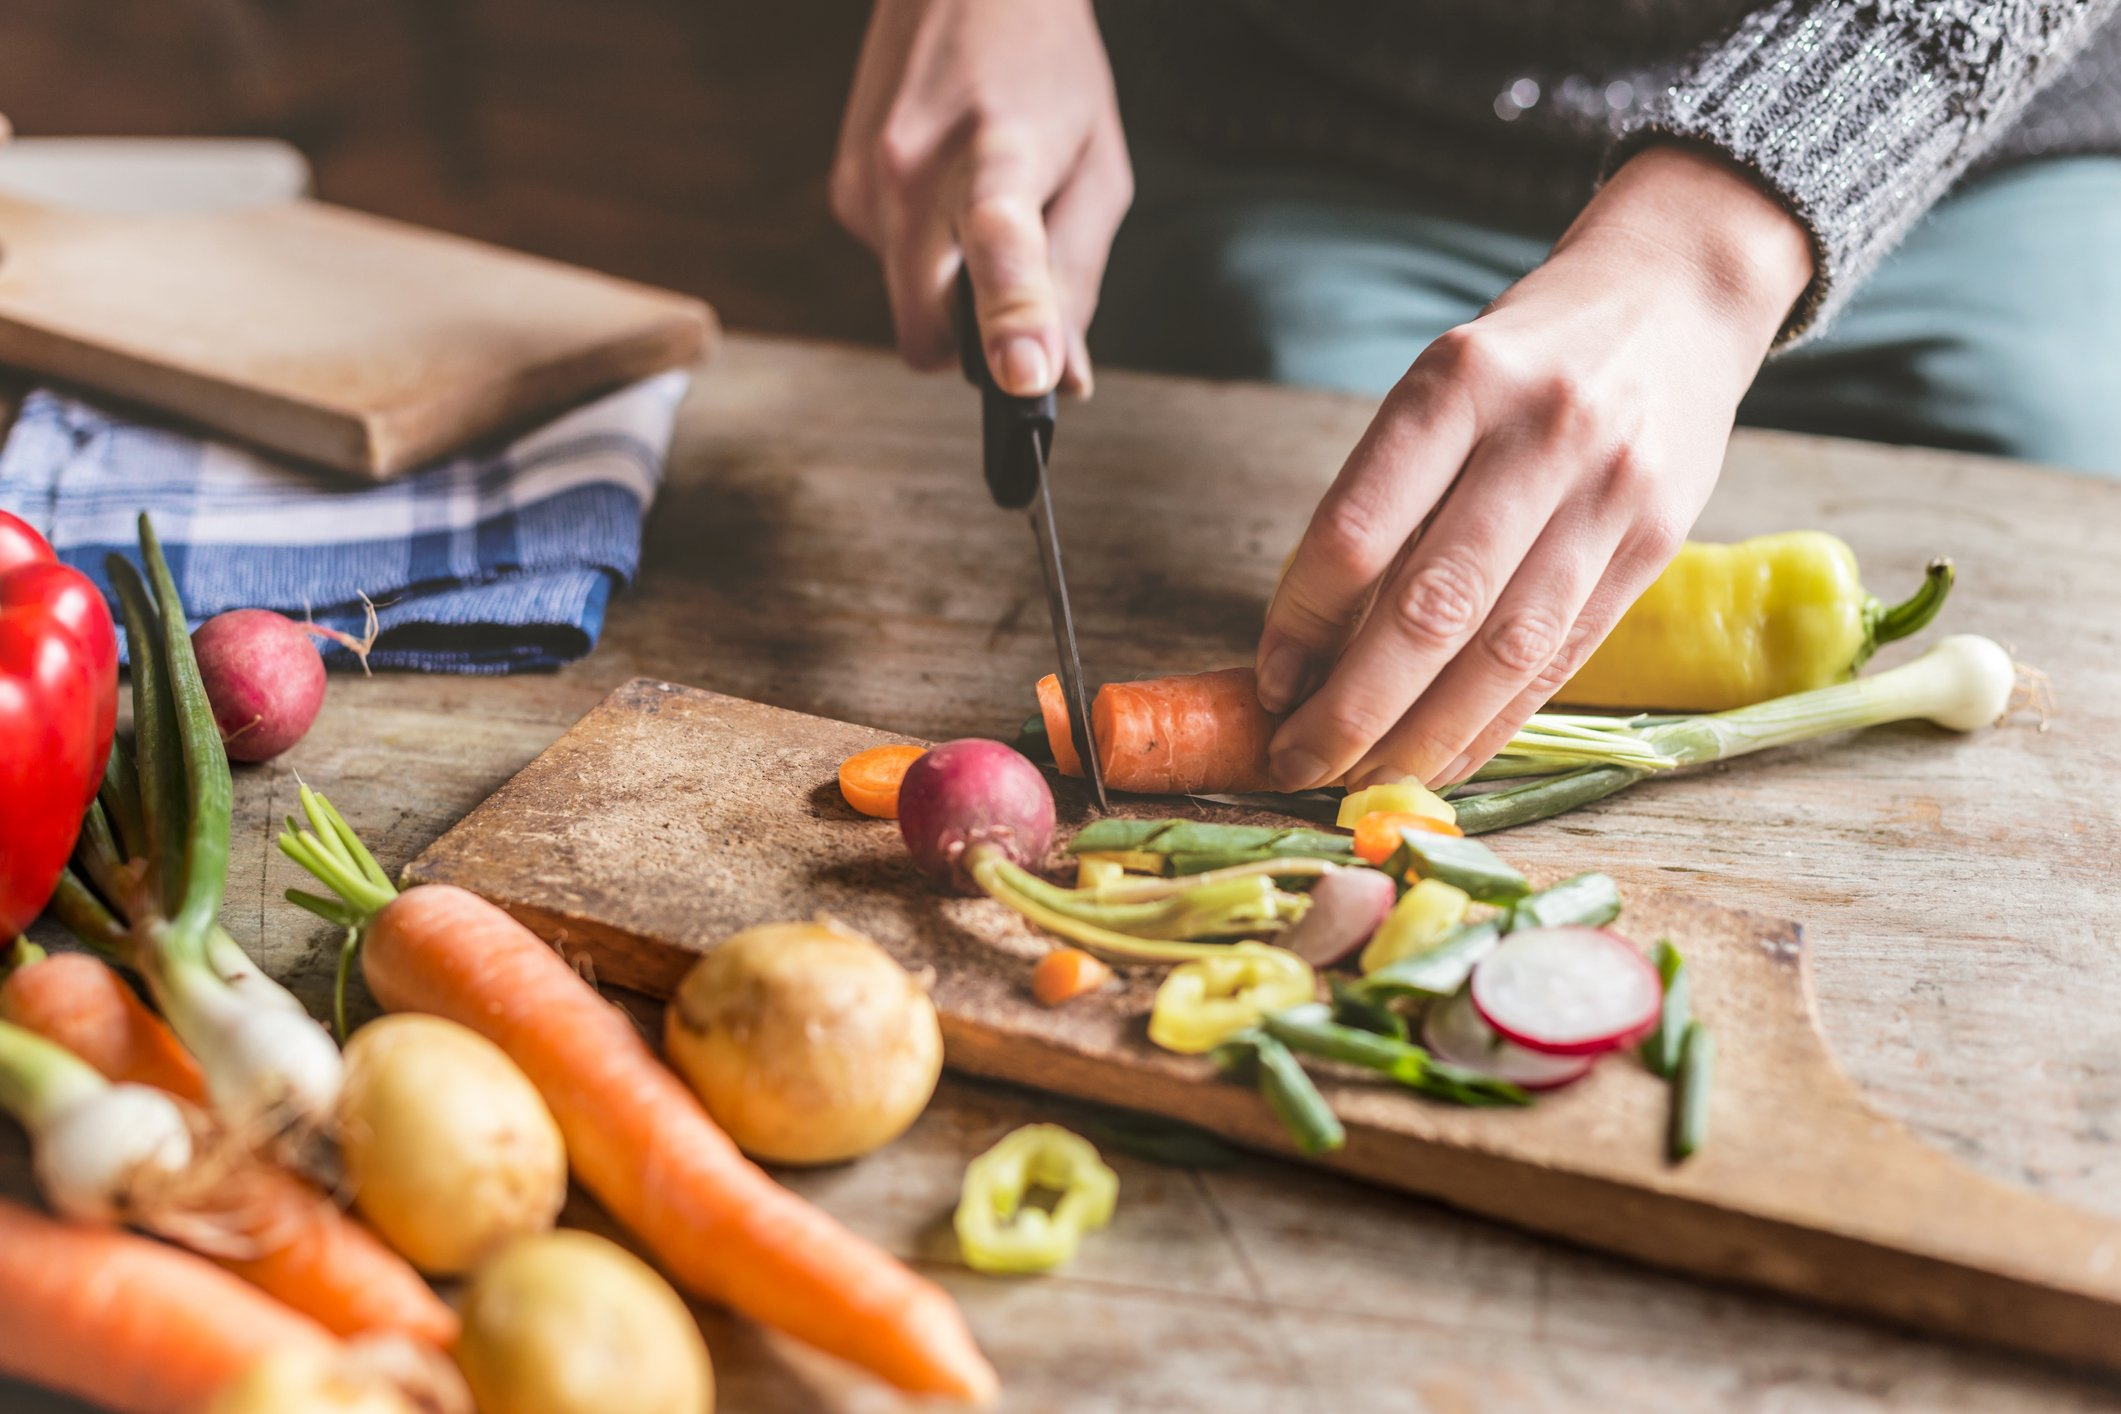 Back to Nutrition – 5 Tips for Cleaner Eating